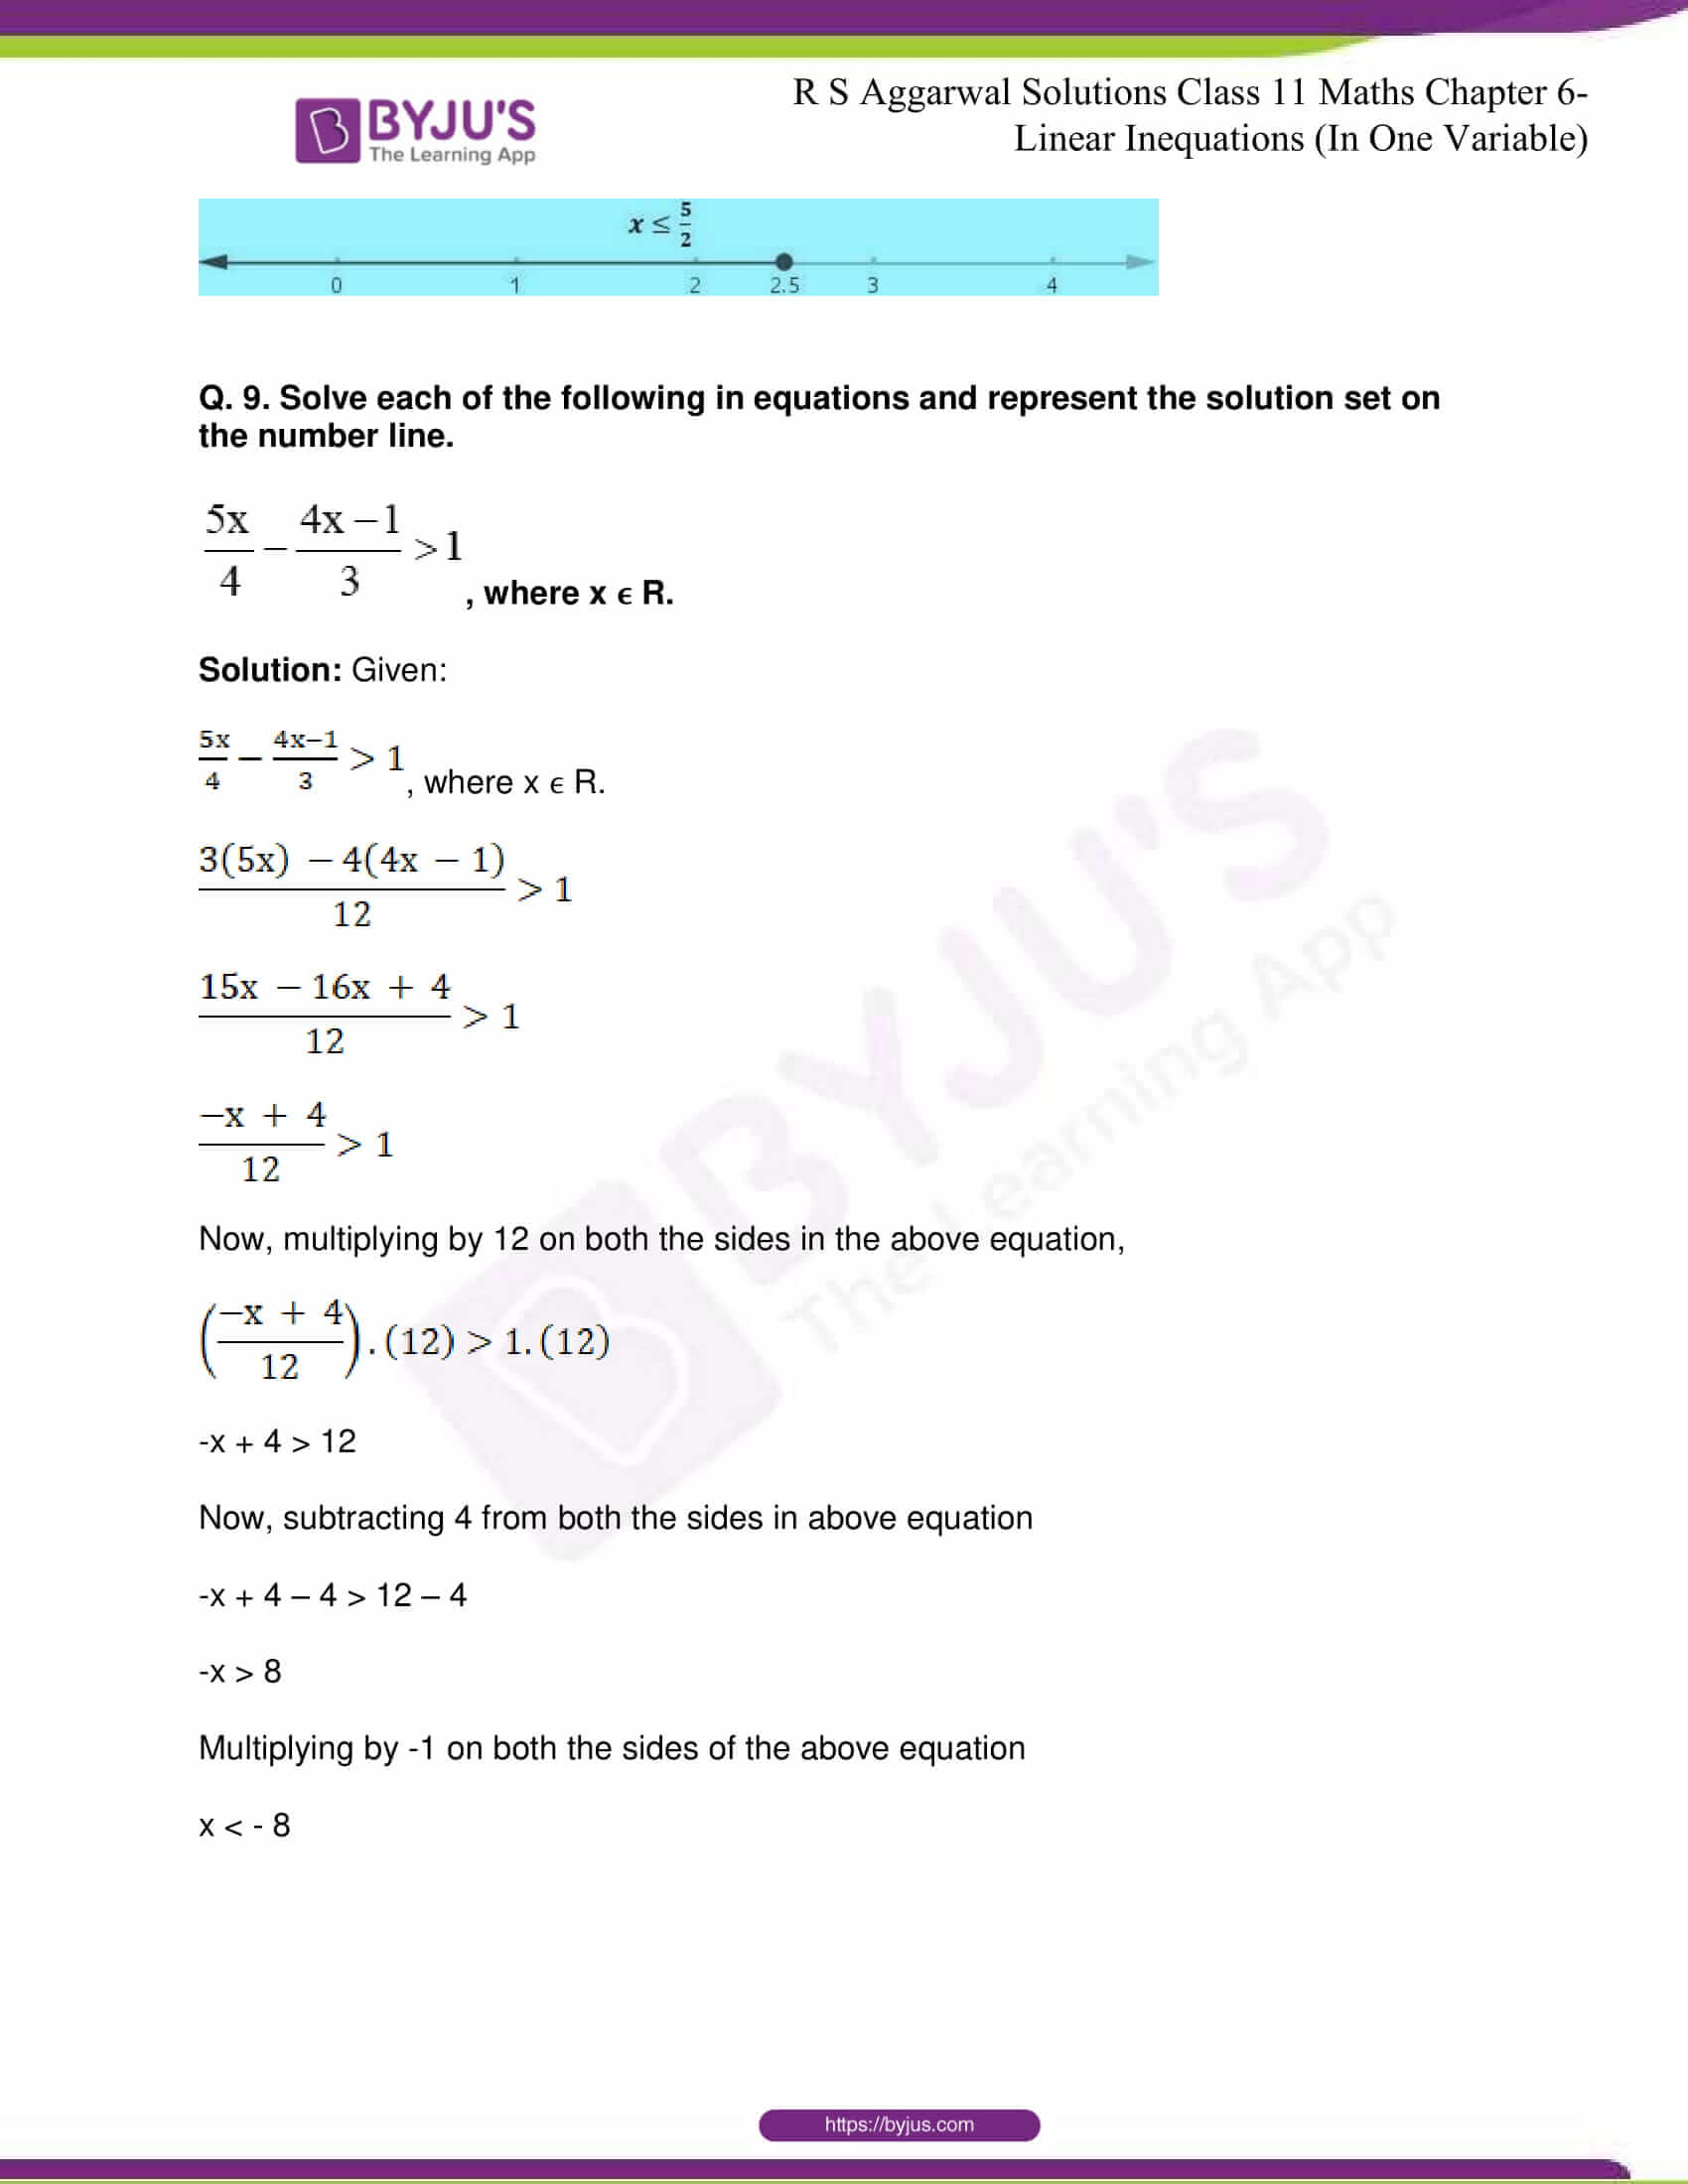 RS Aggarwal Sol Class 11 Maths Chapter 6